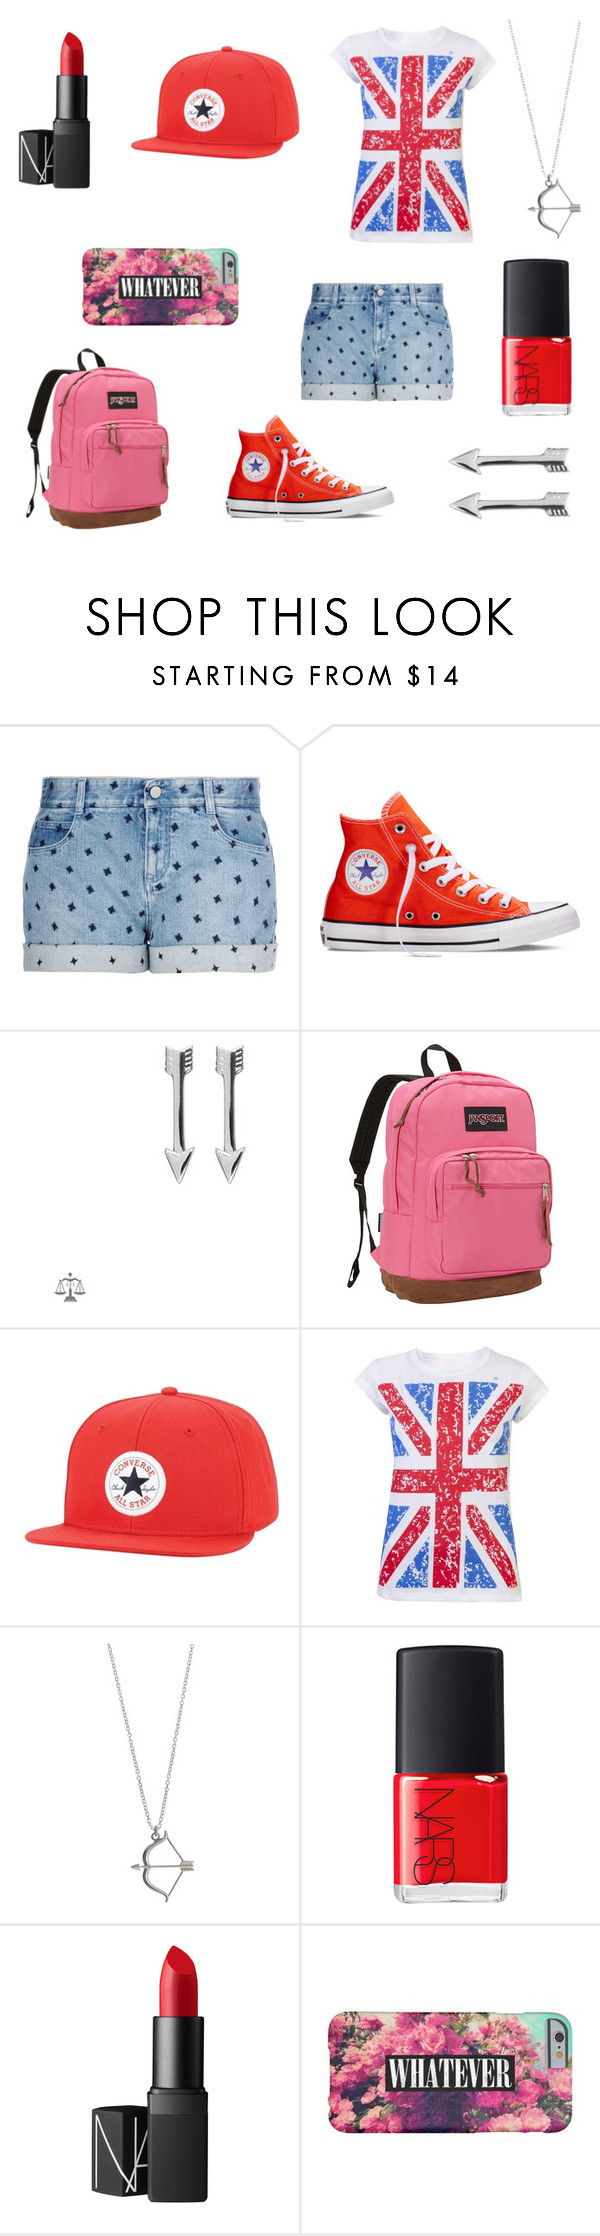 Adriana's first day of school by erin091203 on Polyvore featuring STELLA McCARTNEY, Converse, JanSport, SOPHIE by SOPHIE, NARS Cosmetics, women's clothing, women's fashion, women, female and woman